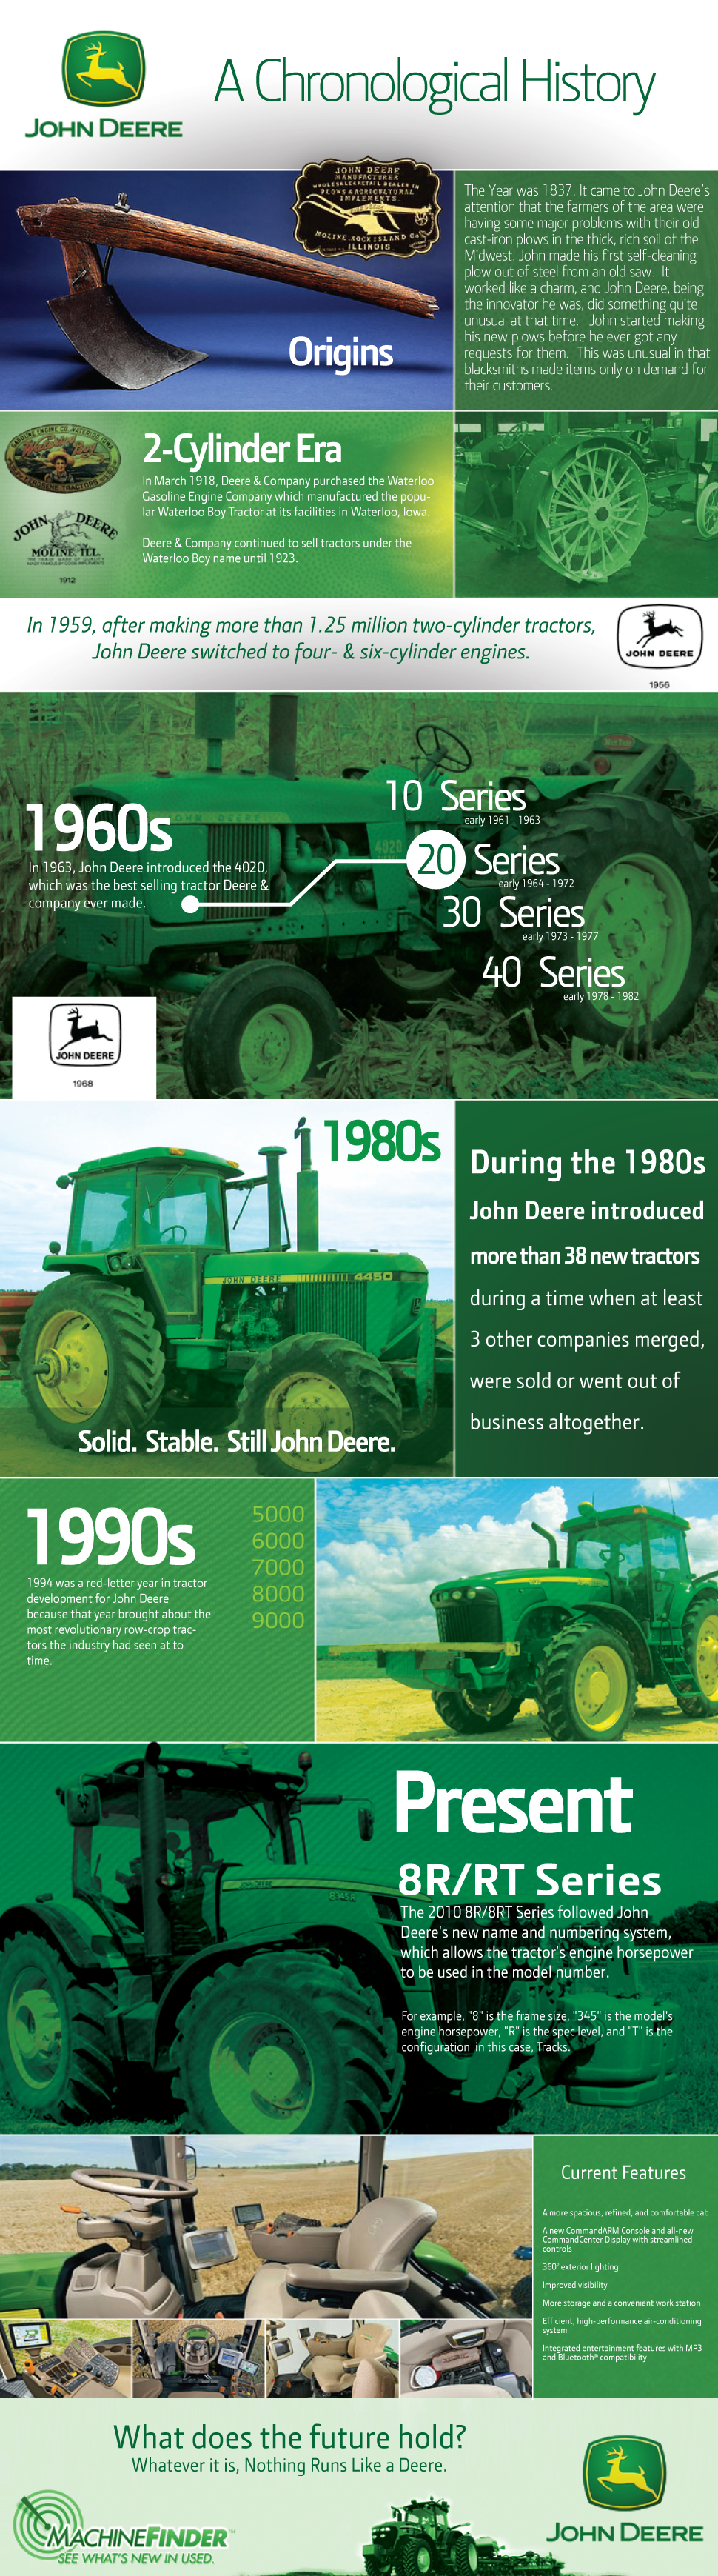 John Deere Chronological History Infographic